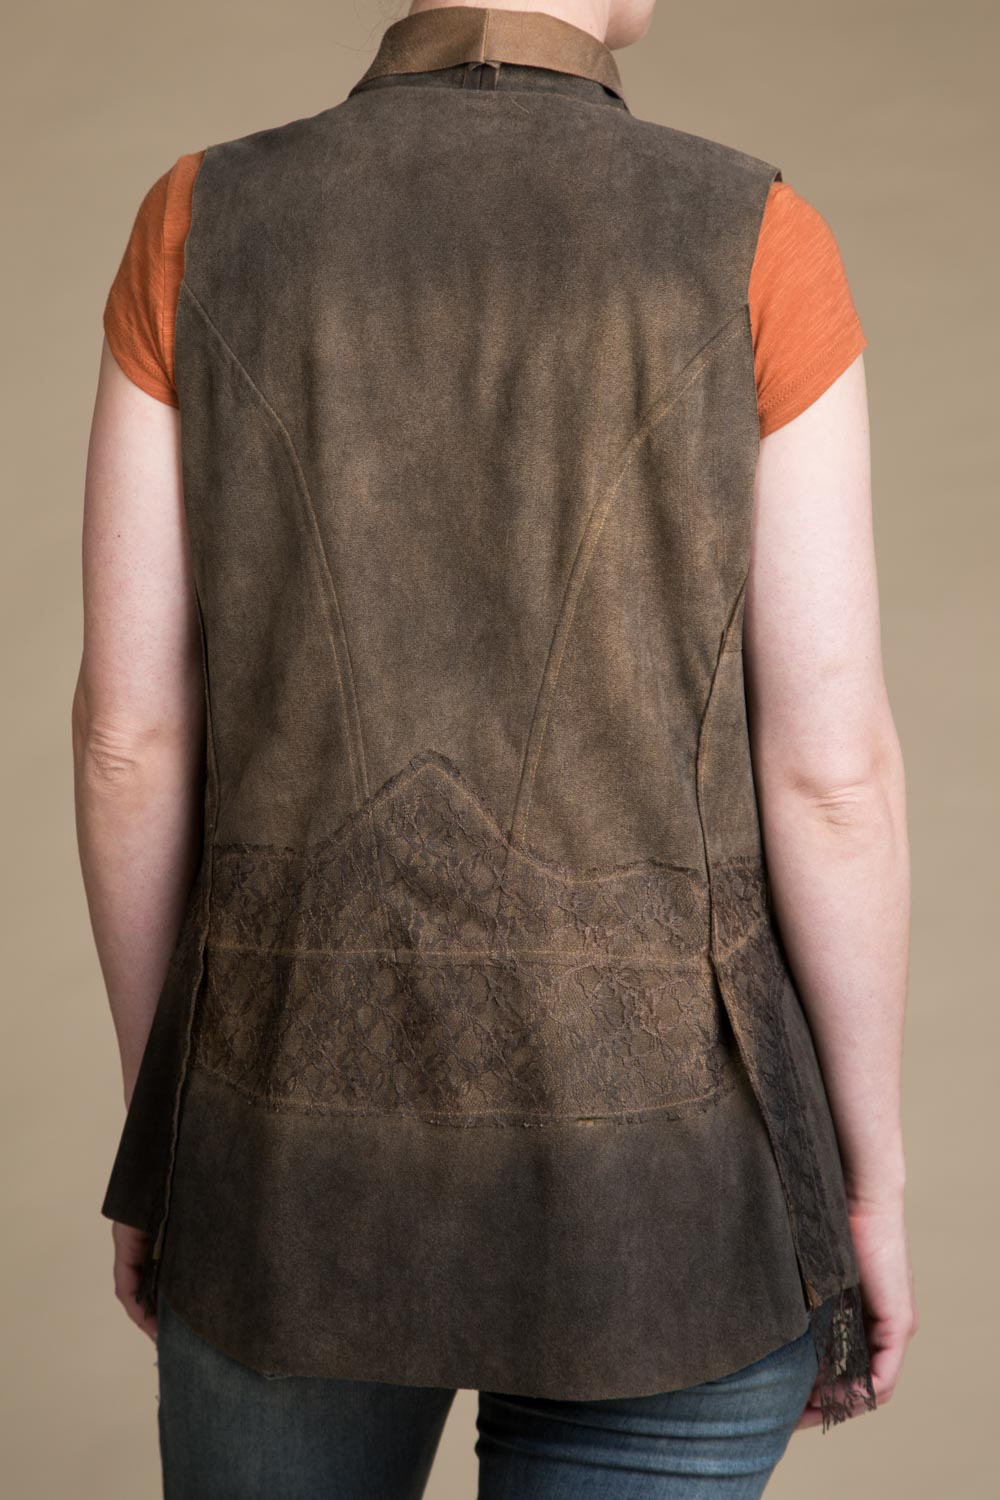 Type 3 Witty Remarks Vest